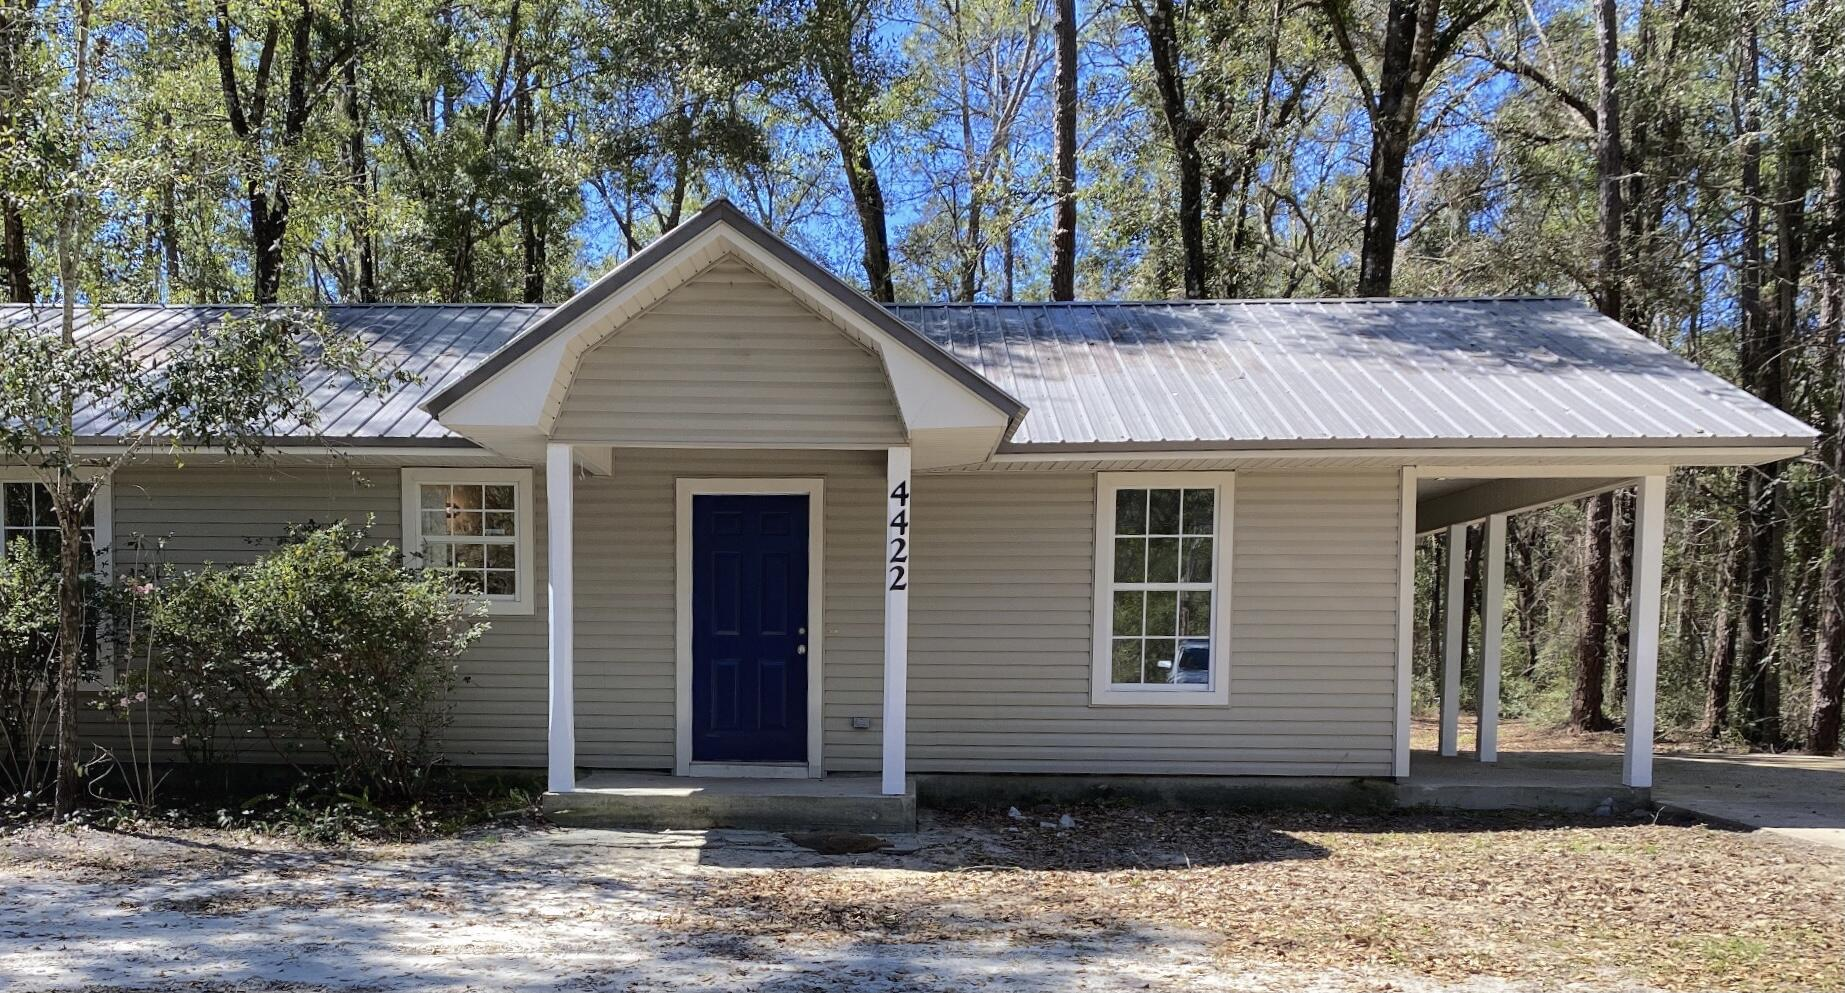 Photo of home for sale at 4422 Co Hwy 3280, Freeport FL